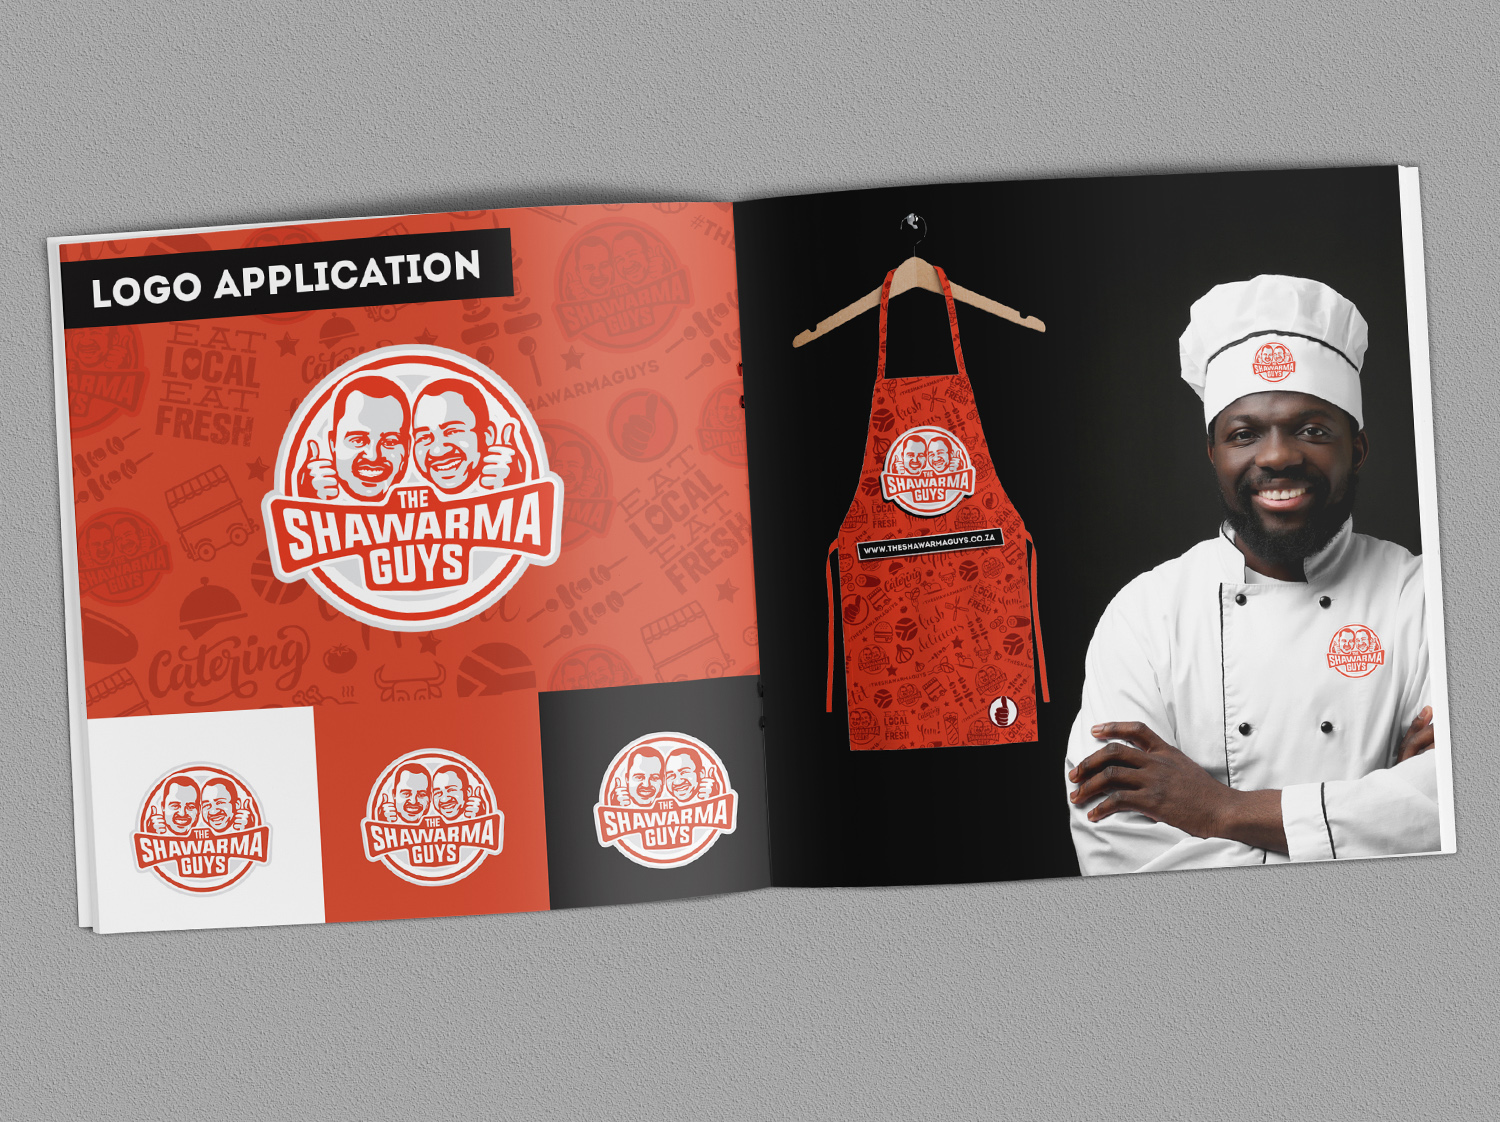 the-shawarma-guys-brand-guidelines-logo-brand-application-agent-orange-design.jpg